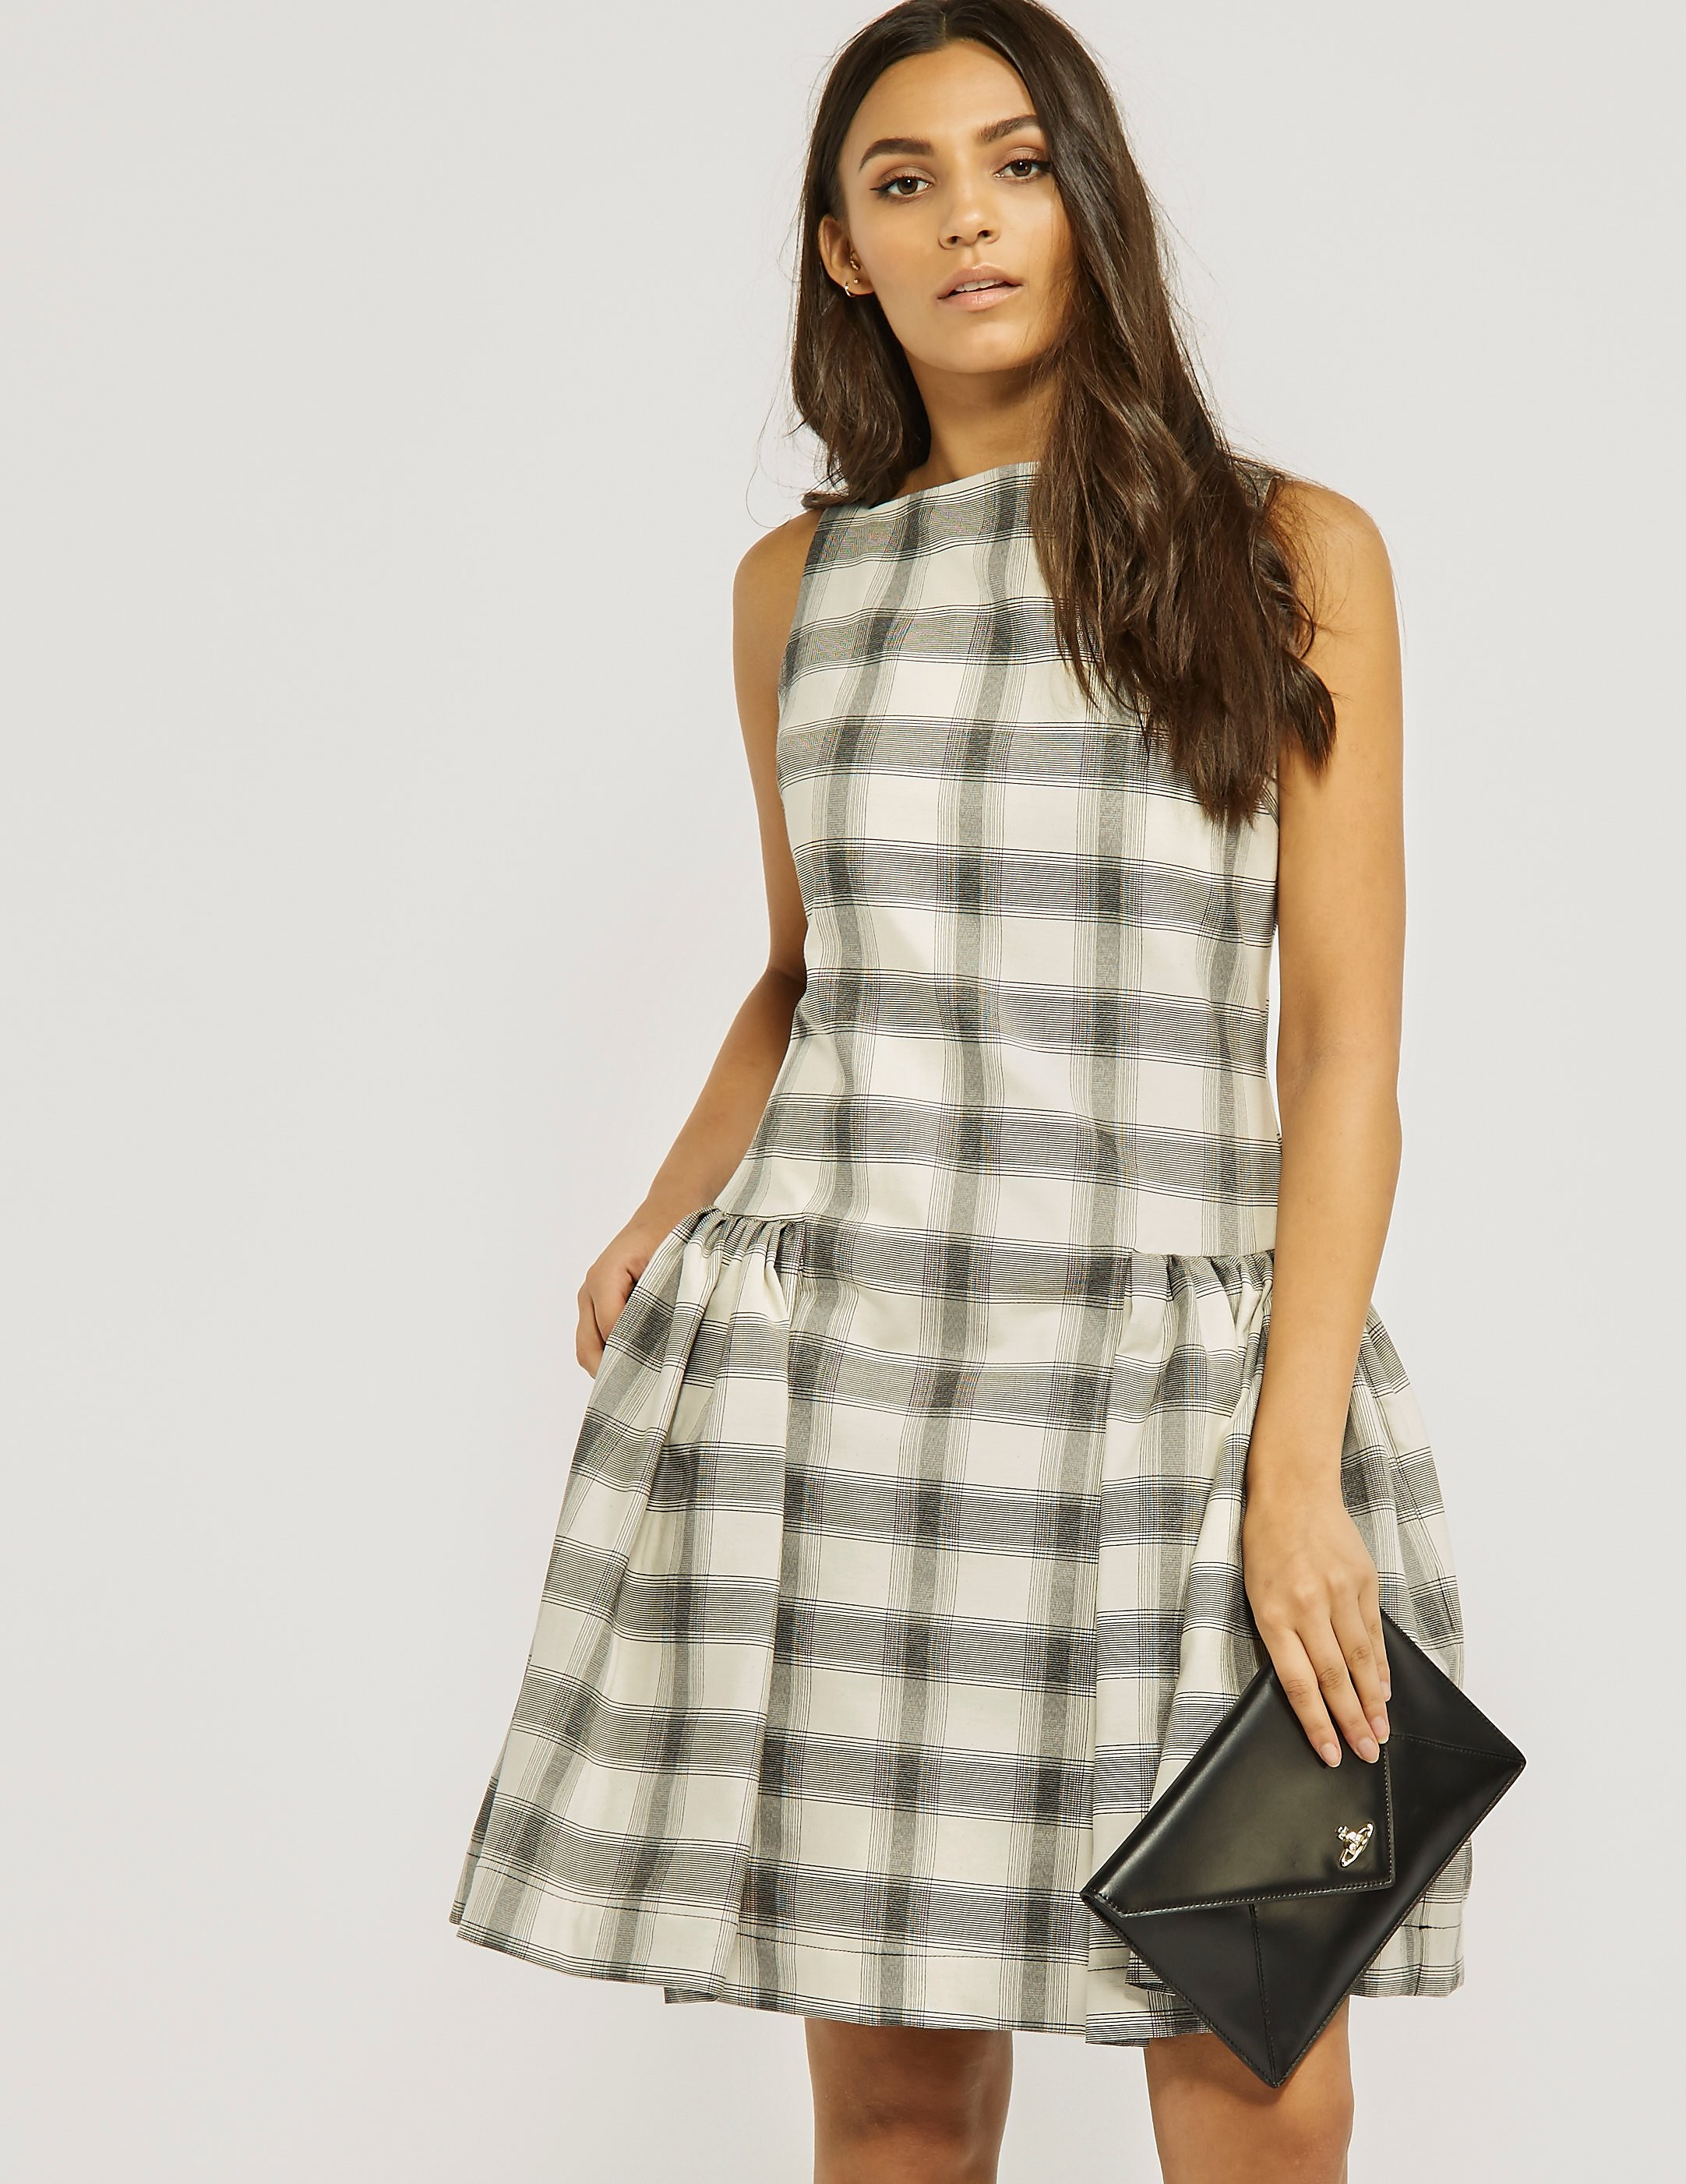 Vivienne Westwood Dagas Check Dress